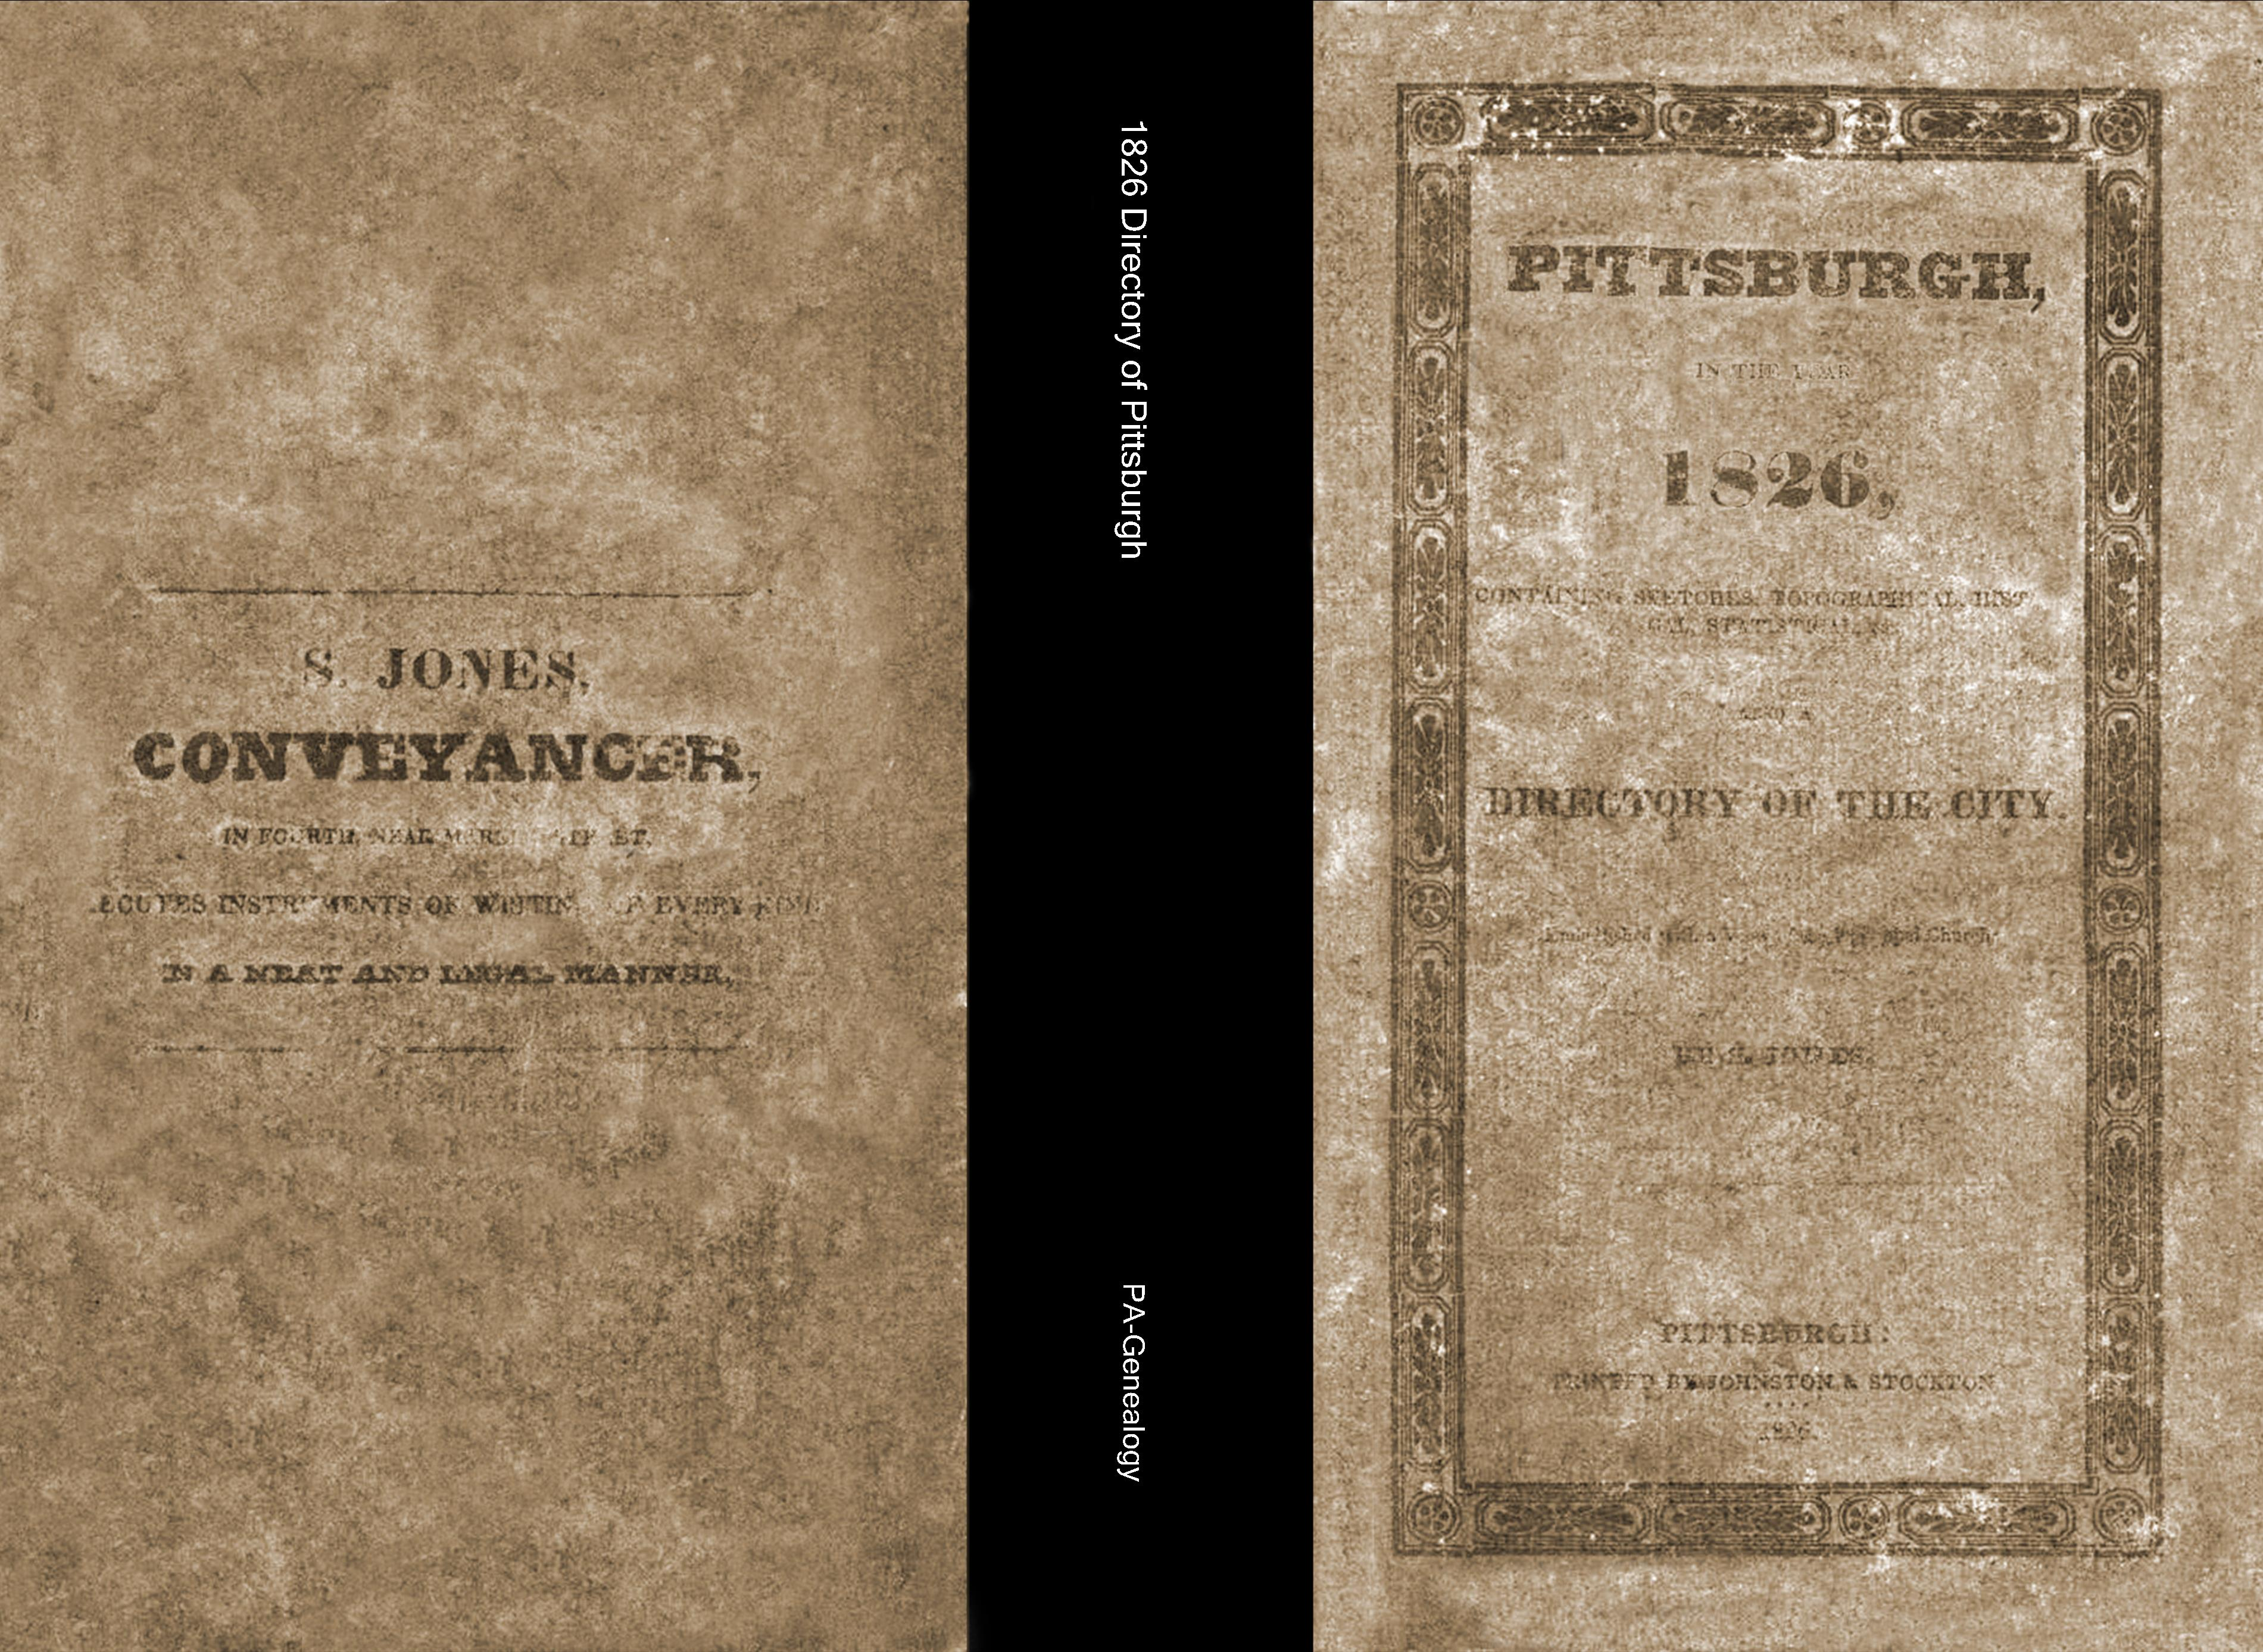 1826 Directory of Pittsburgh cover image